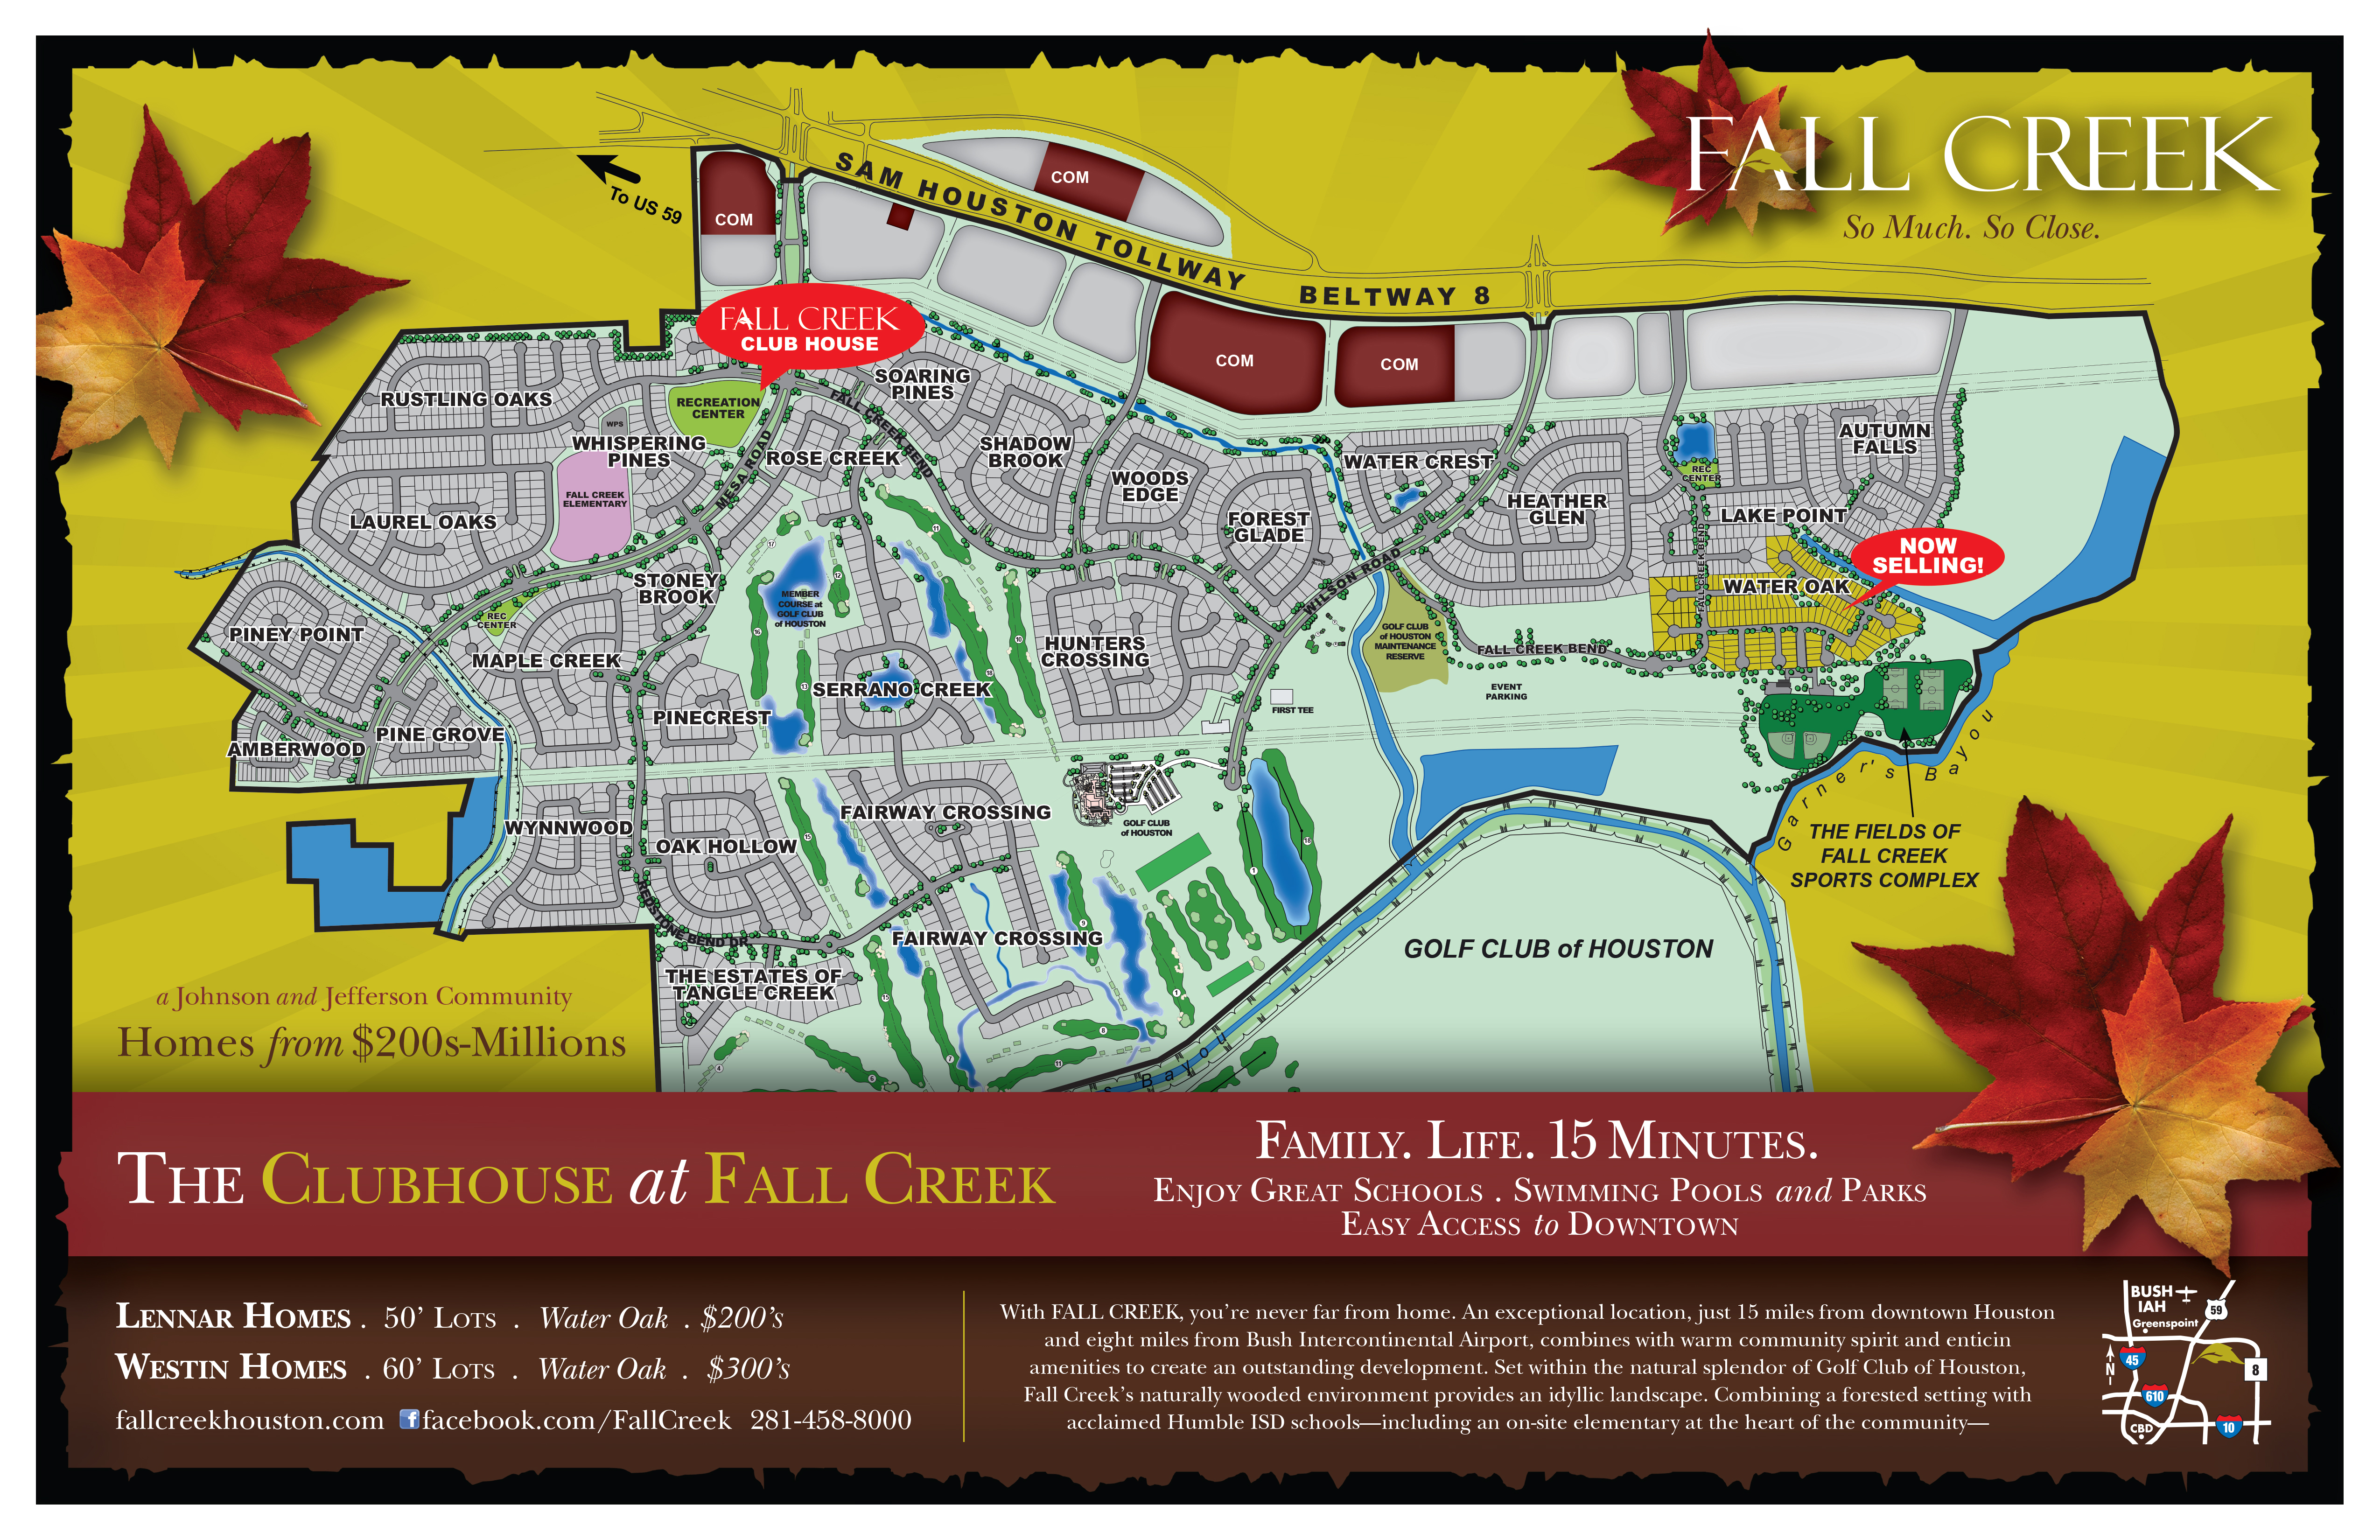 Fall Creek Model Home Tour Map